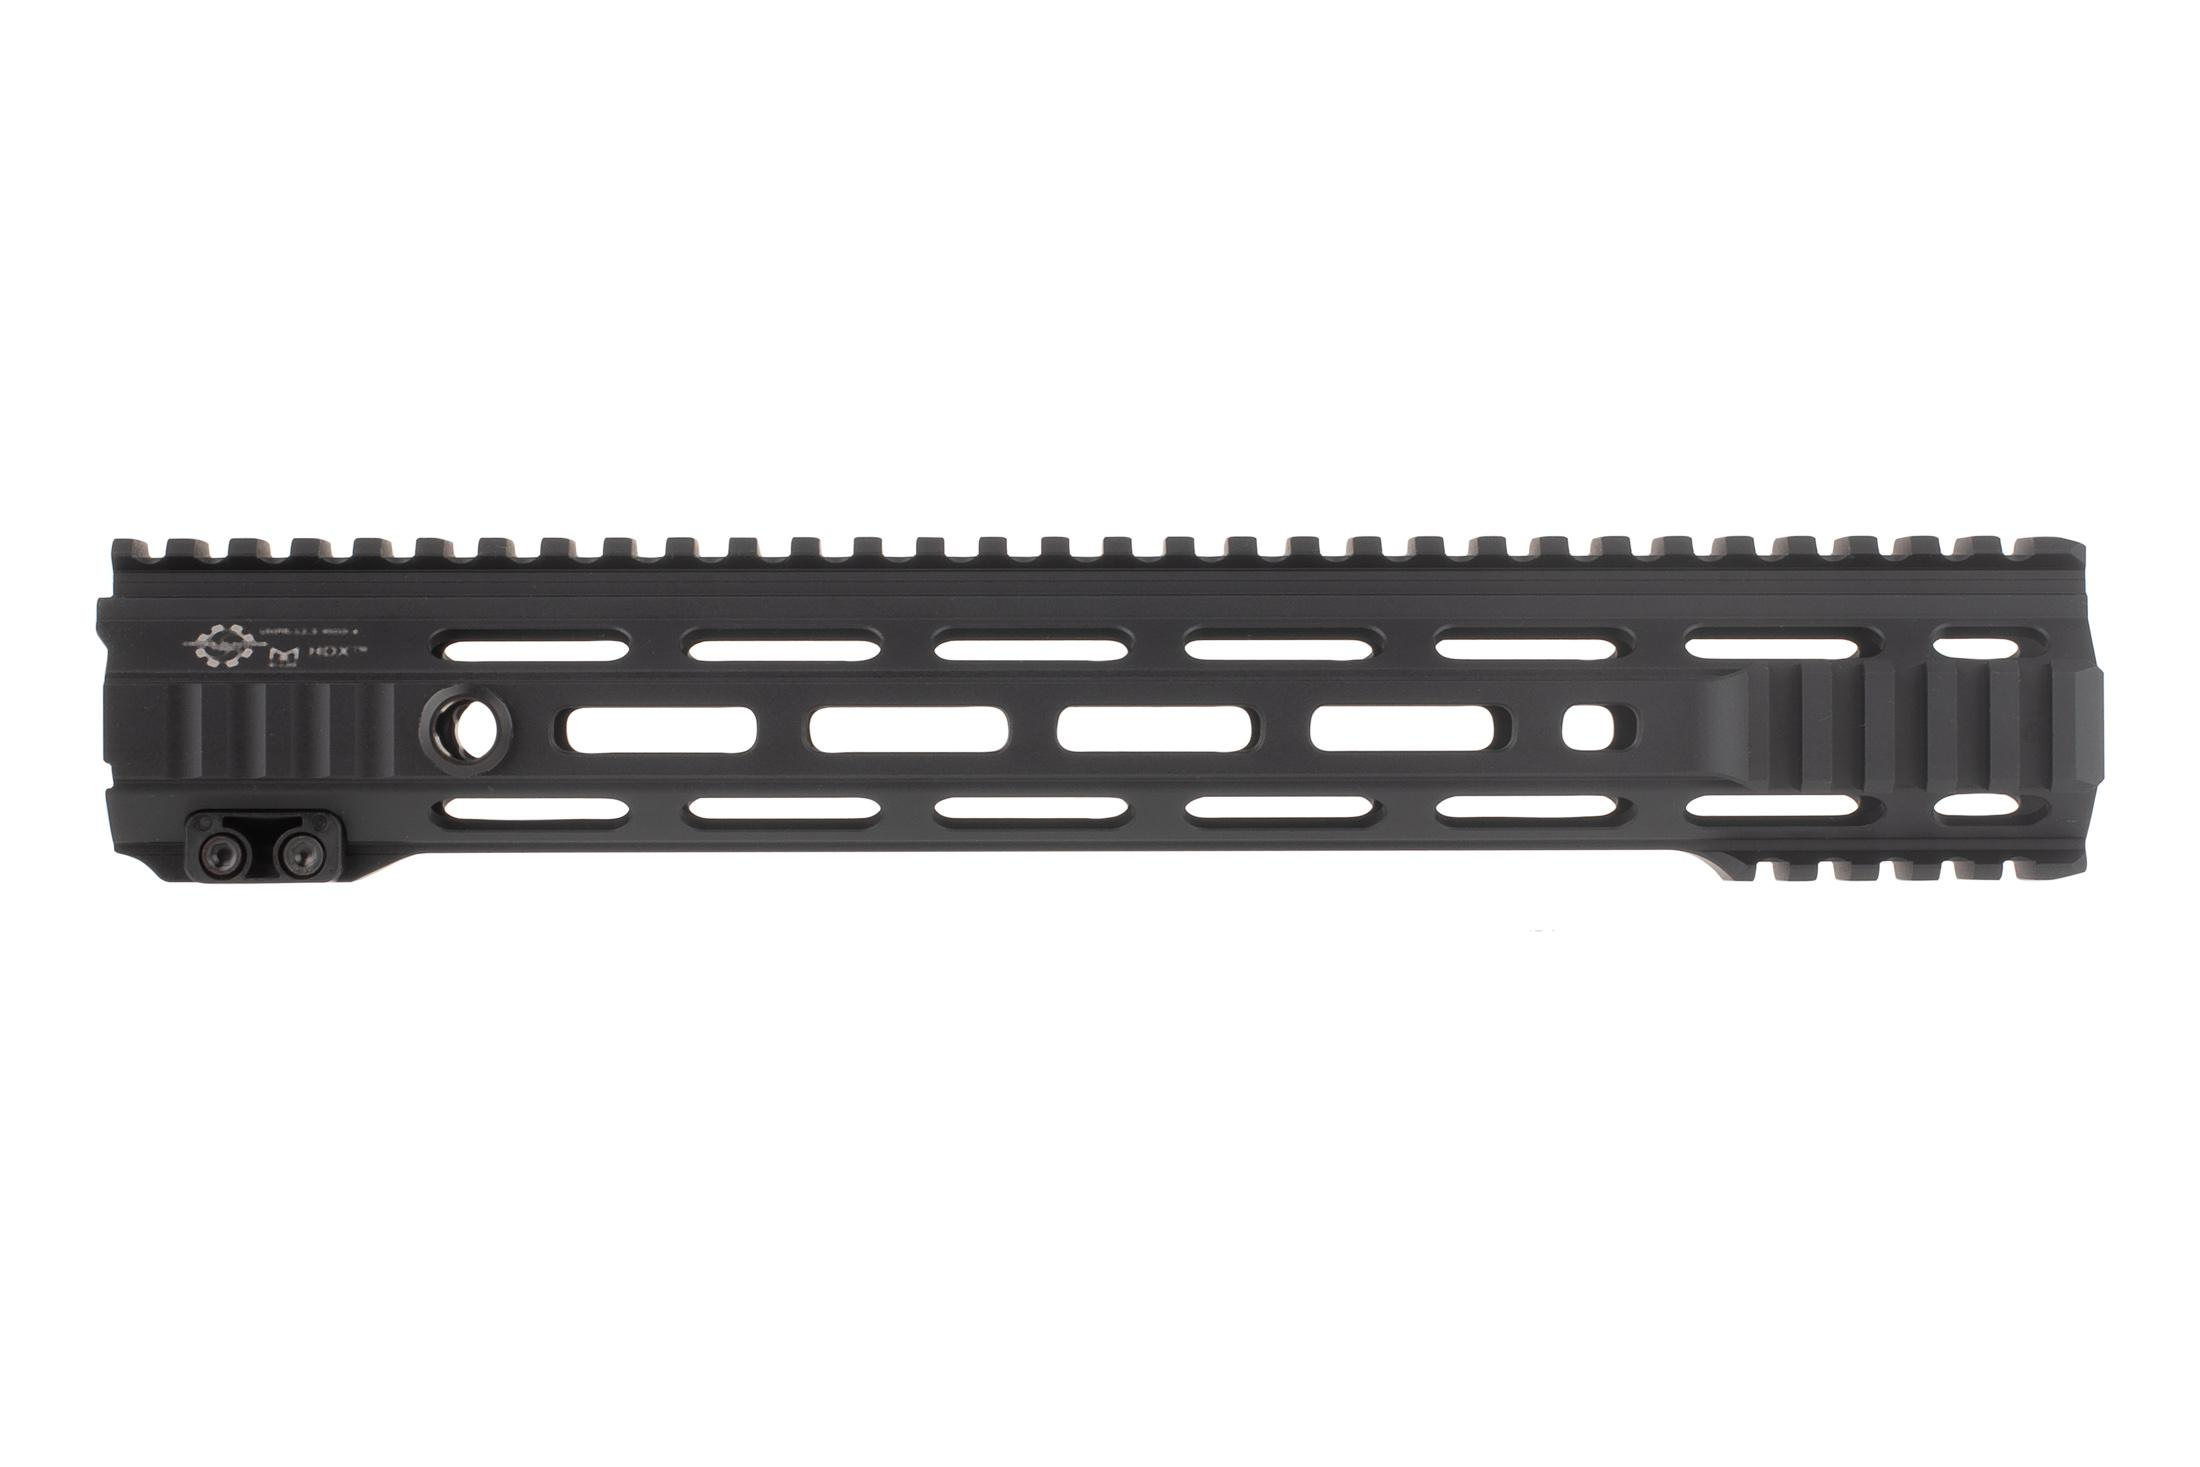 The Cross Machine Tool Mod 4 HDX UHPR Handguard 12.5 is machined from 7075-T6 aluminum